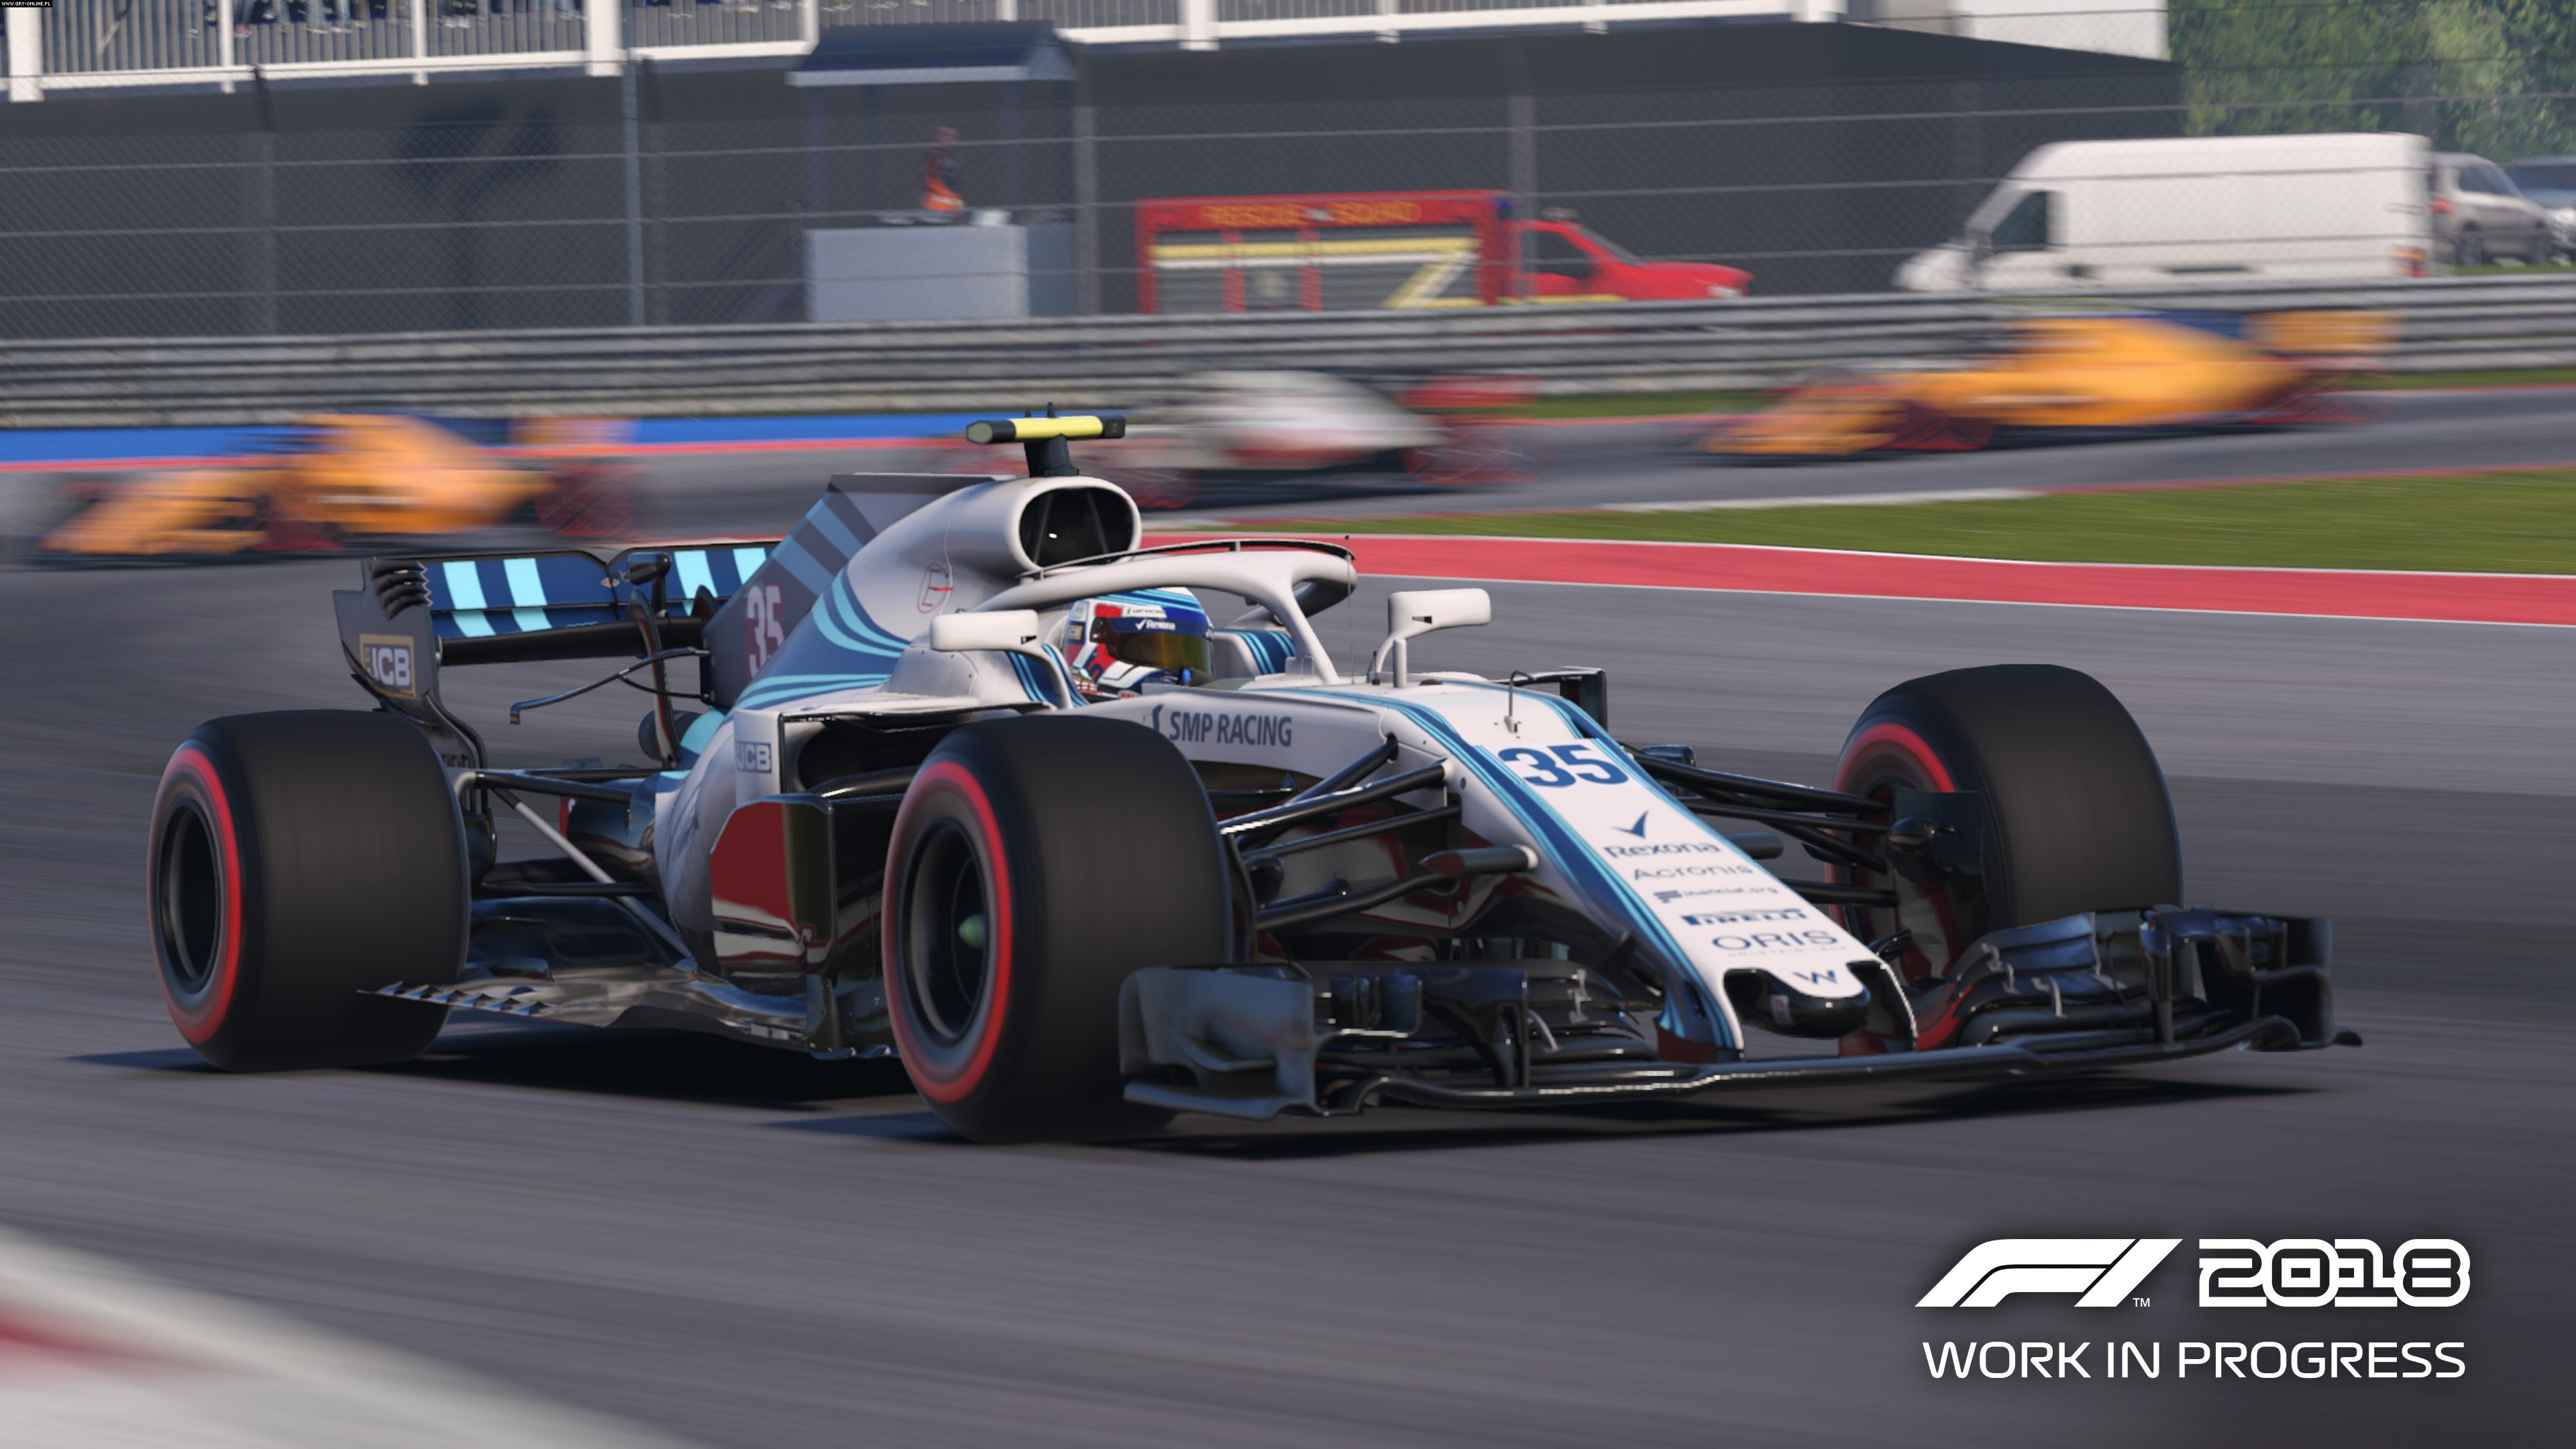 F1 2018 PC, PS4, XONE Games Image 24/38, Codemasters Software